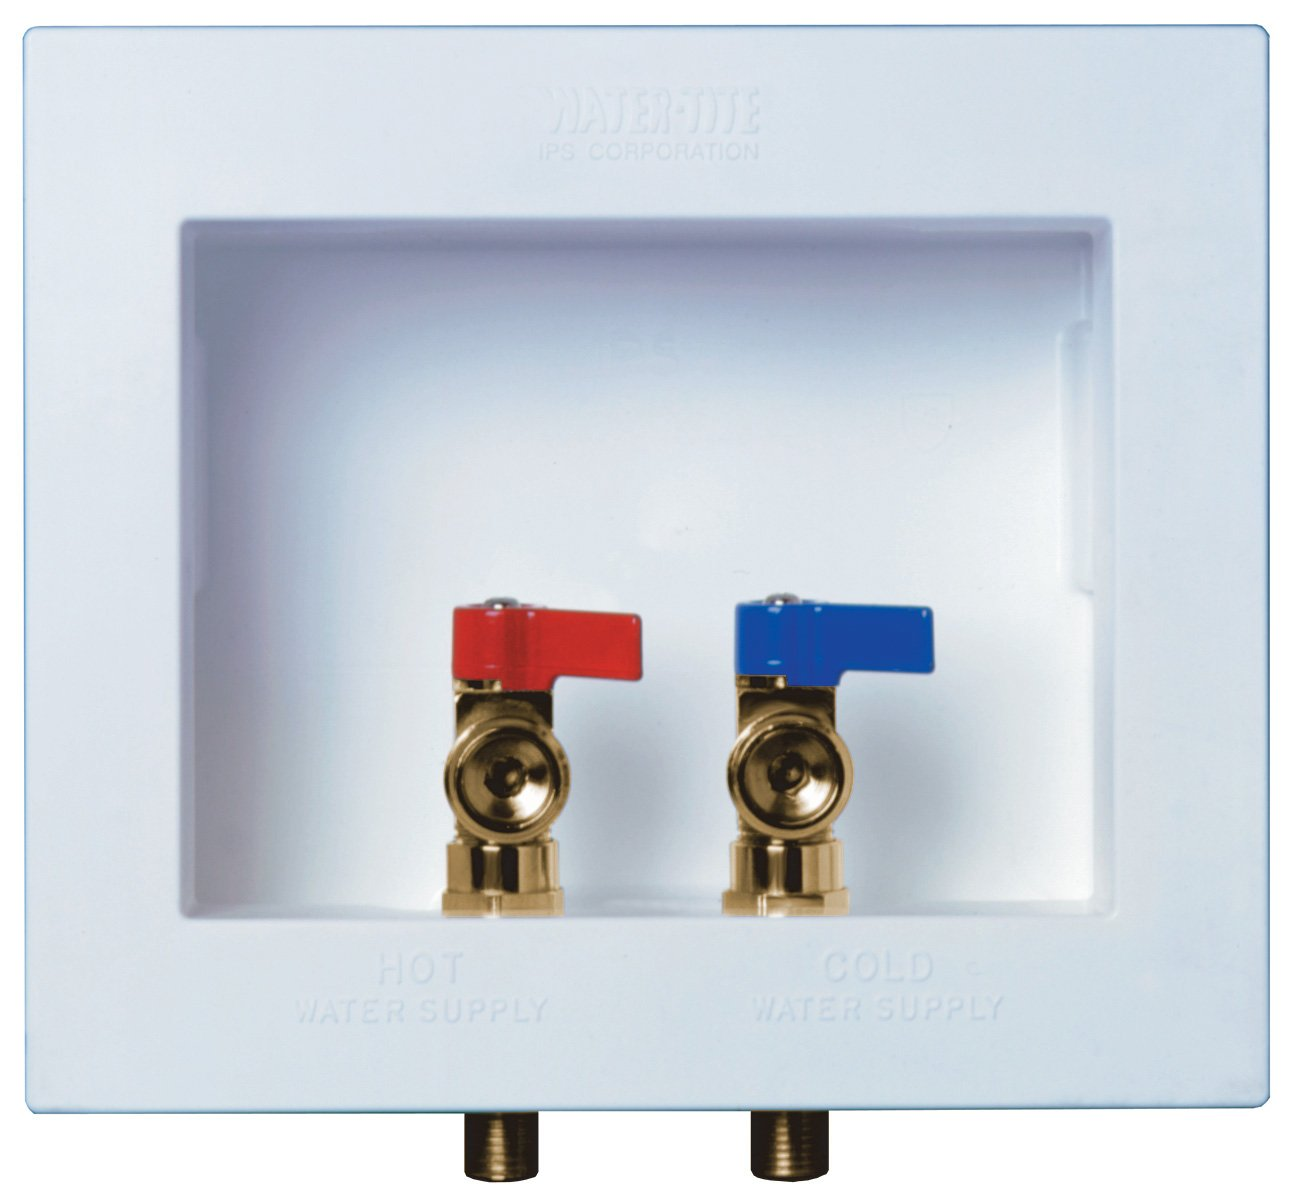 Water-Tite Du-All Dual Drain Washing Machine Outlet Box with Brass Qtr-turn Valves, Installed, 1/2'' CPVC Conx